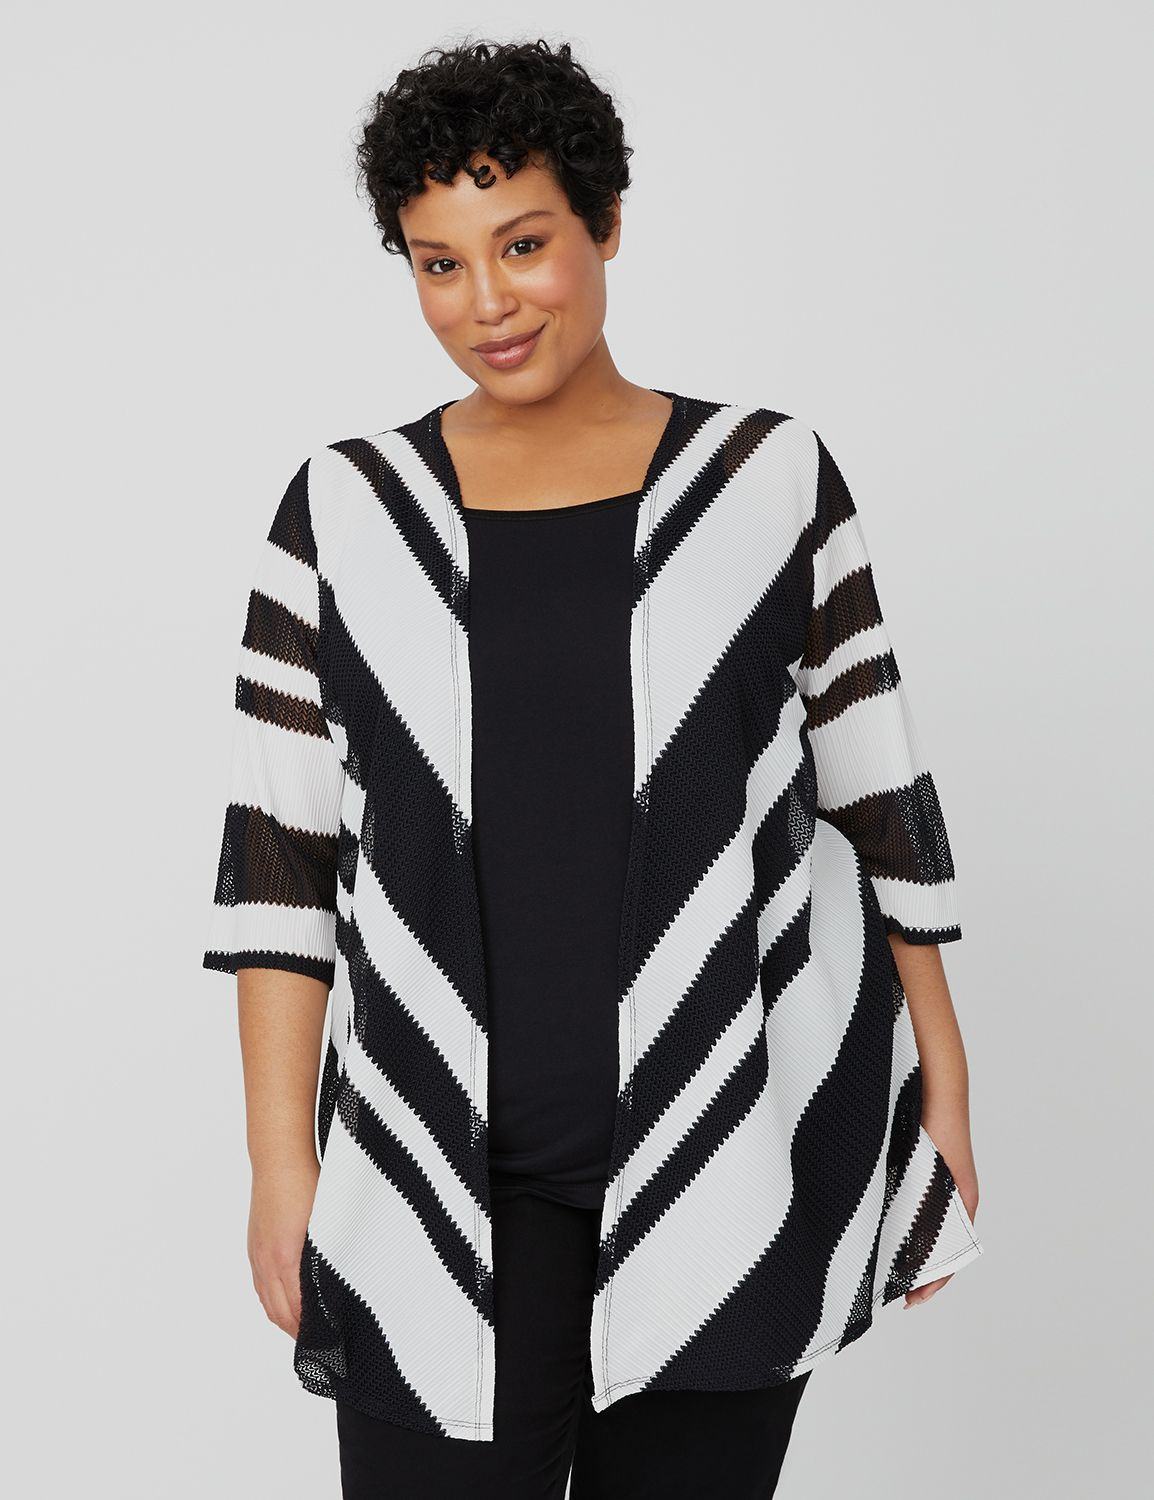 Cascading Herringbone Cardigan 1089908 BLK/WHT HERRINGBONE COLORBL MP-300099983